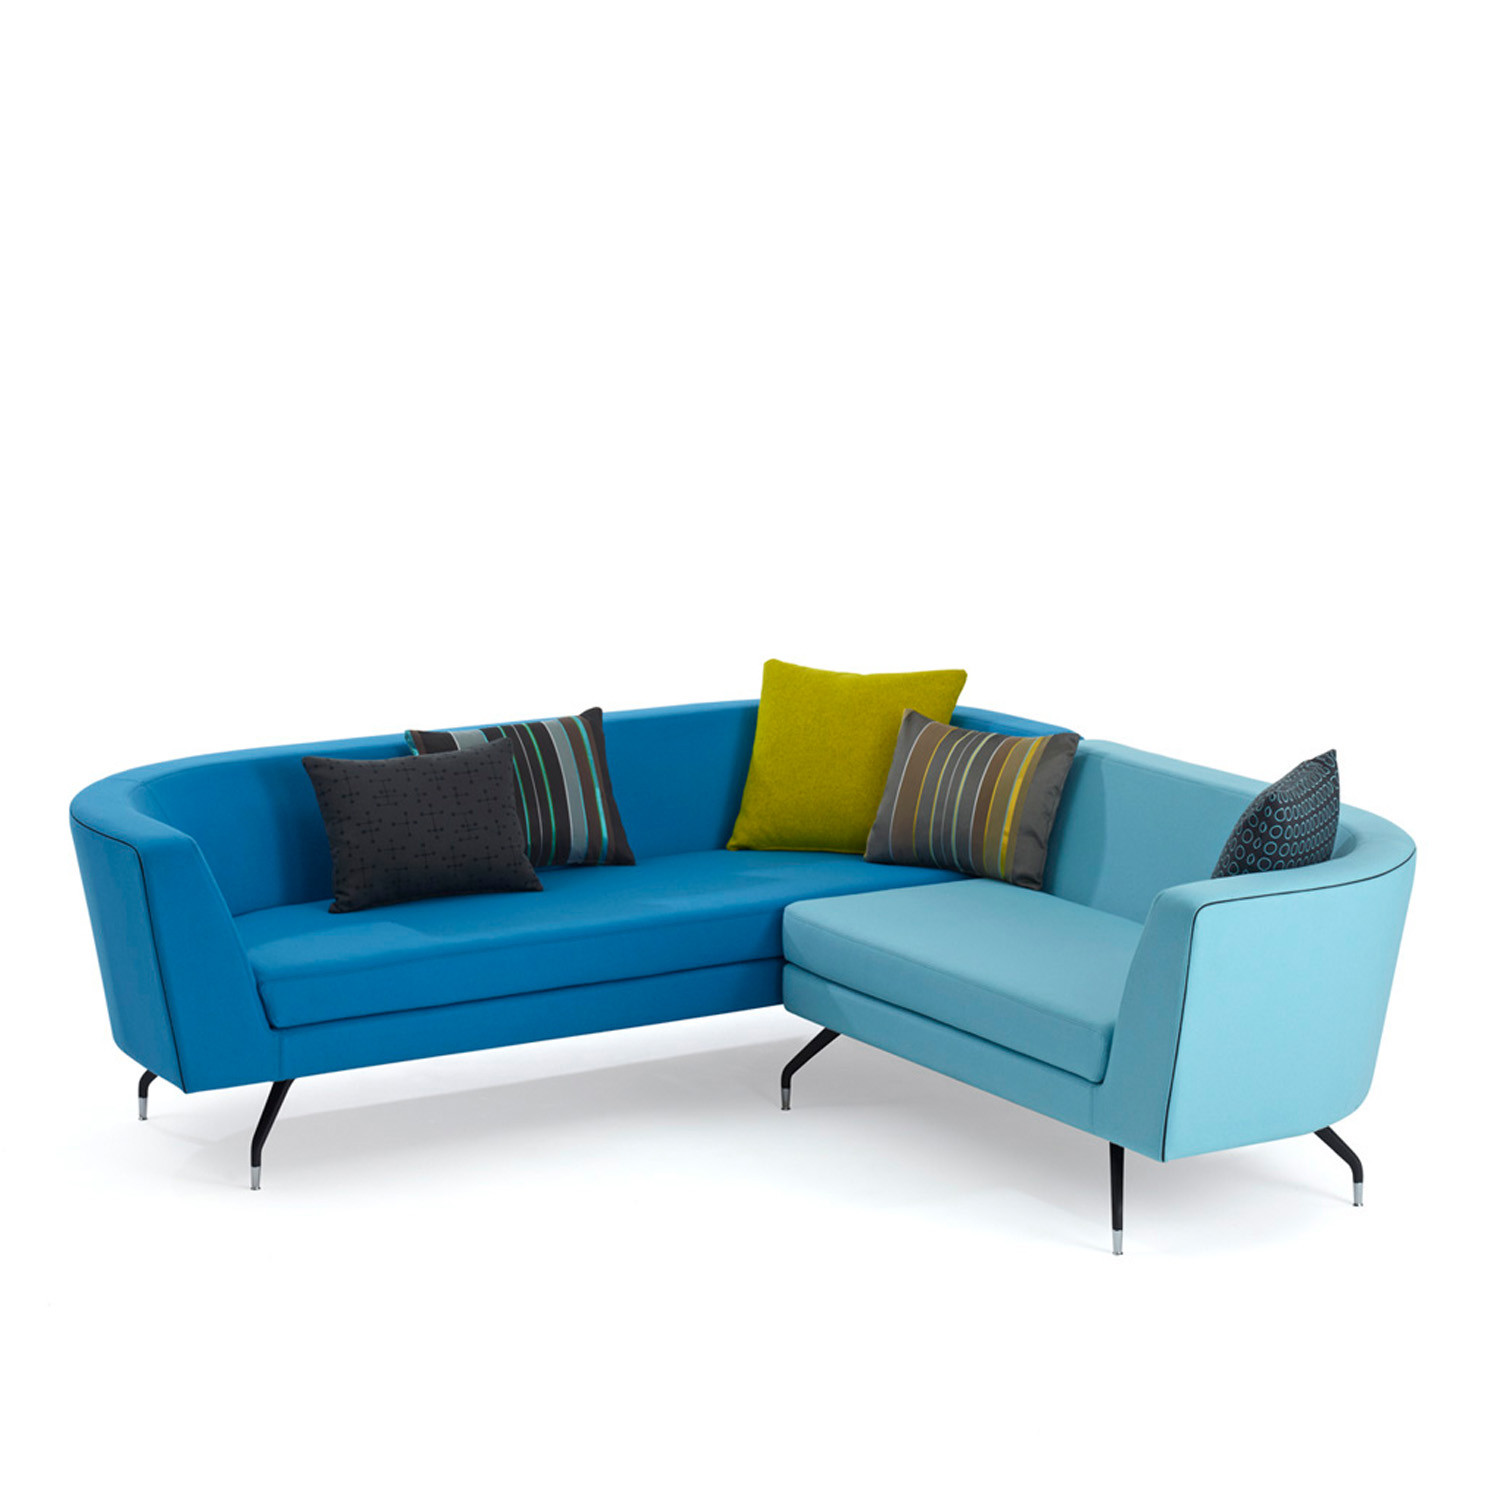 High Back Tub Sofa Cwtch Armchair And Sofa Orangebox Upholstered Seating